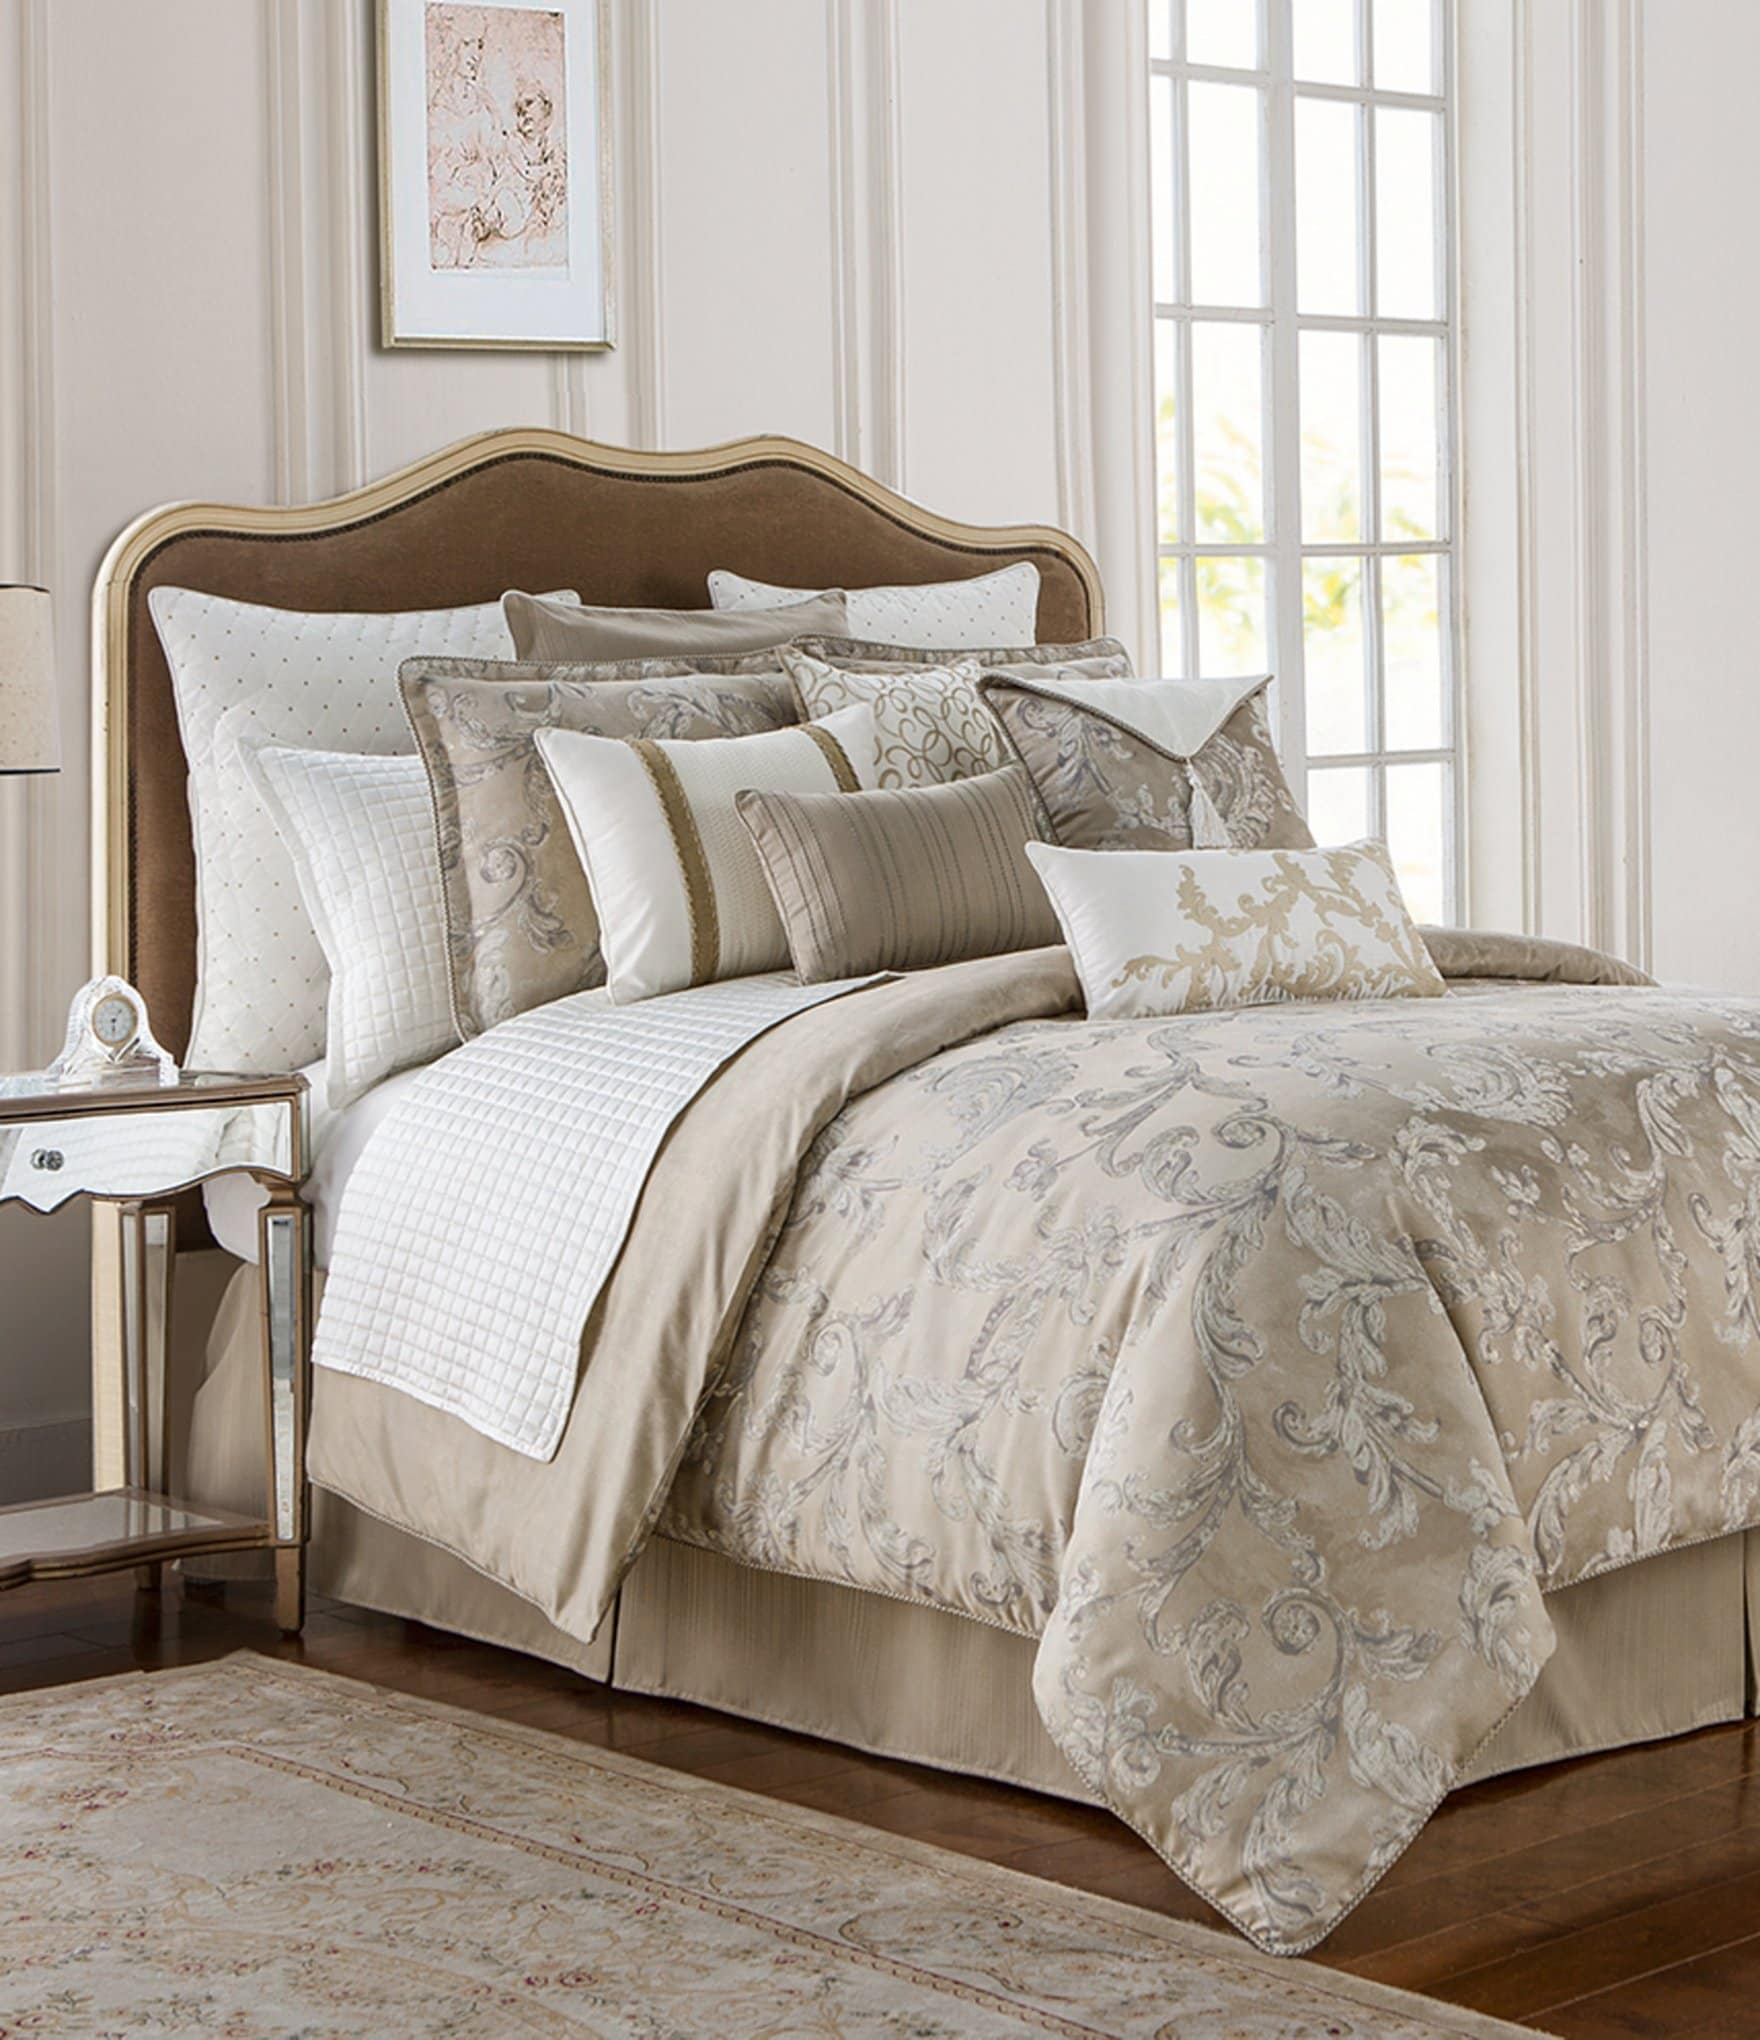 Waterford Chantelle Leaf Jacquard Comforter Set Dillard S